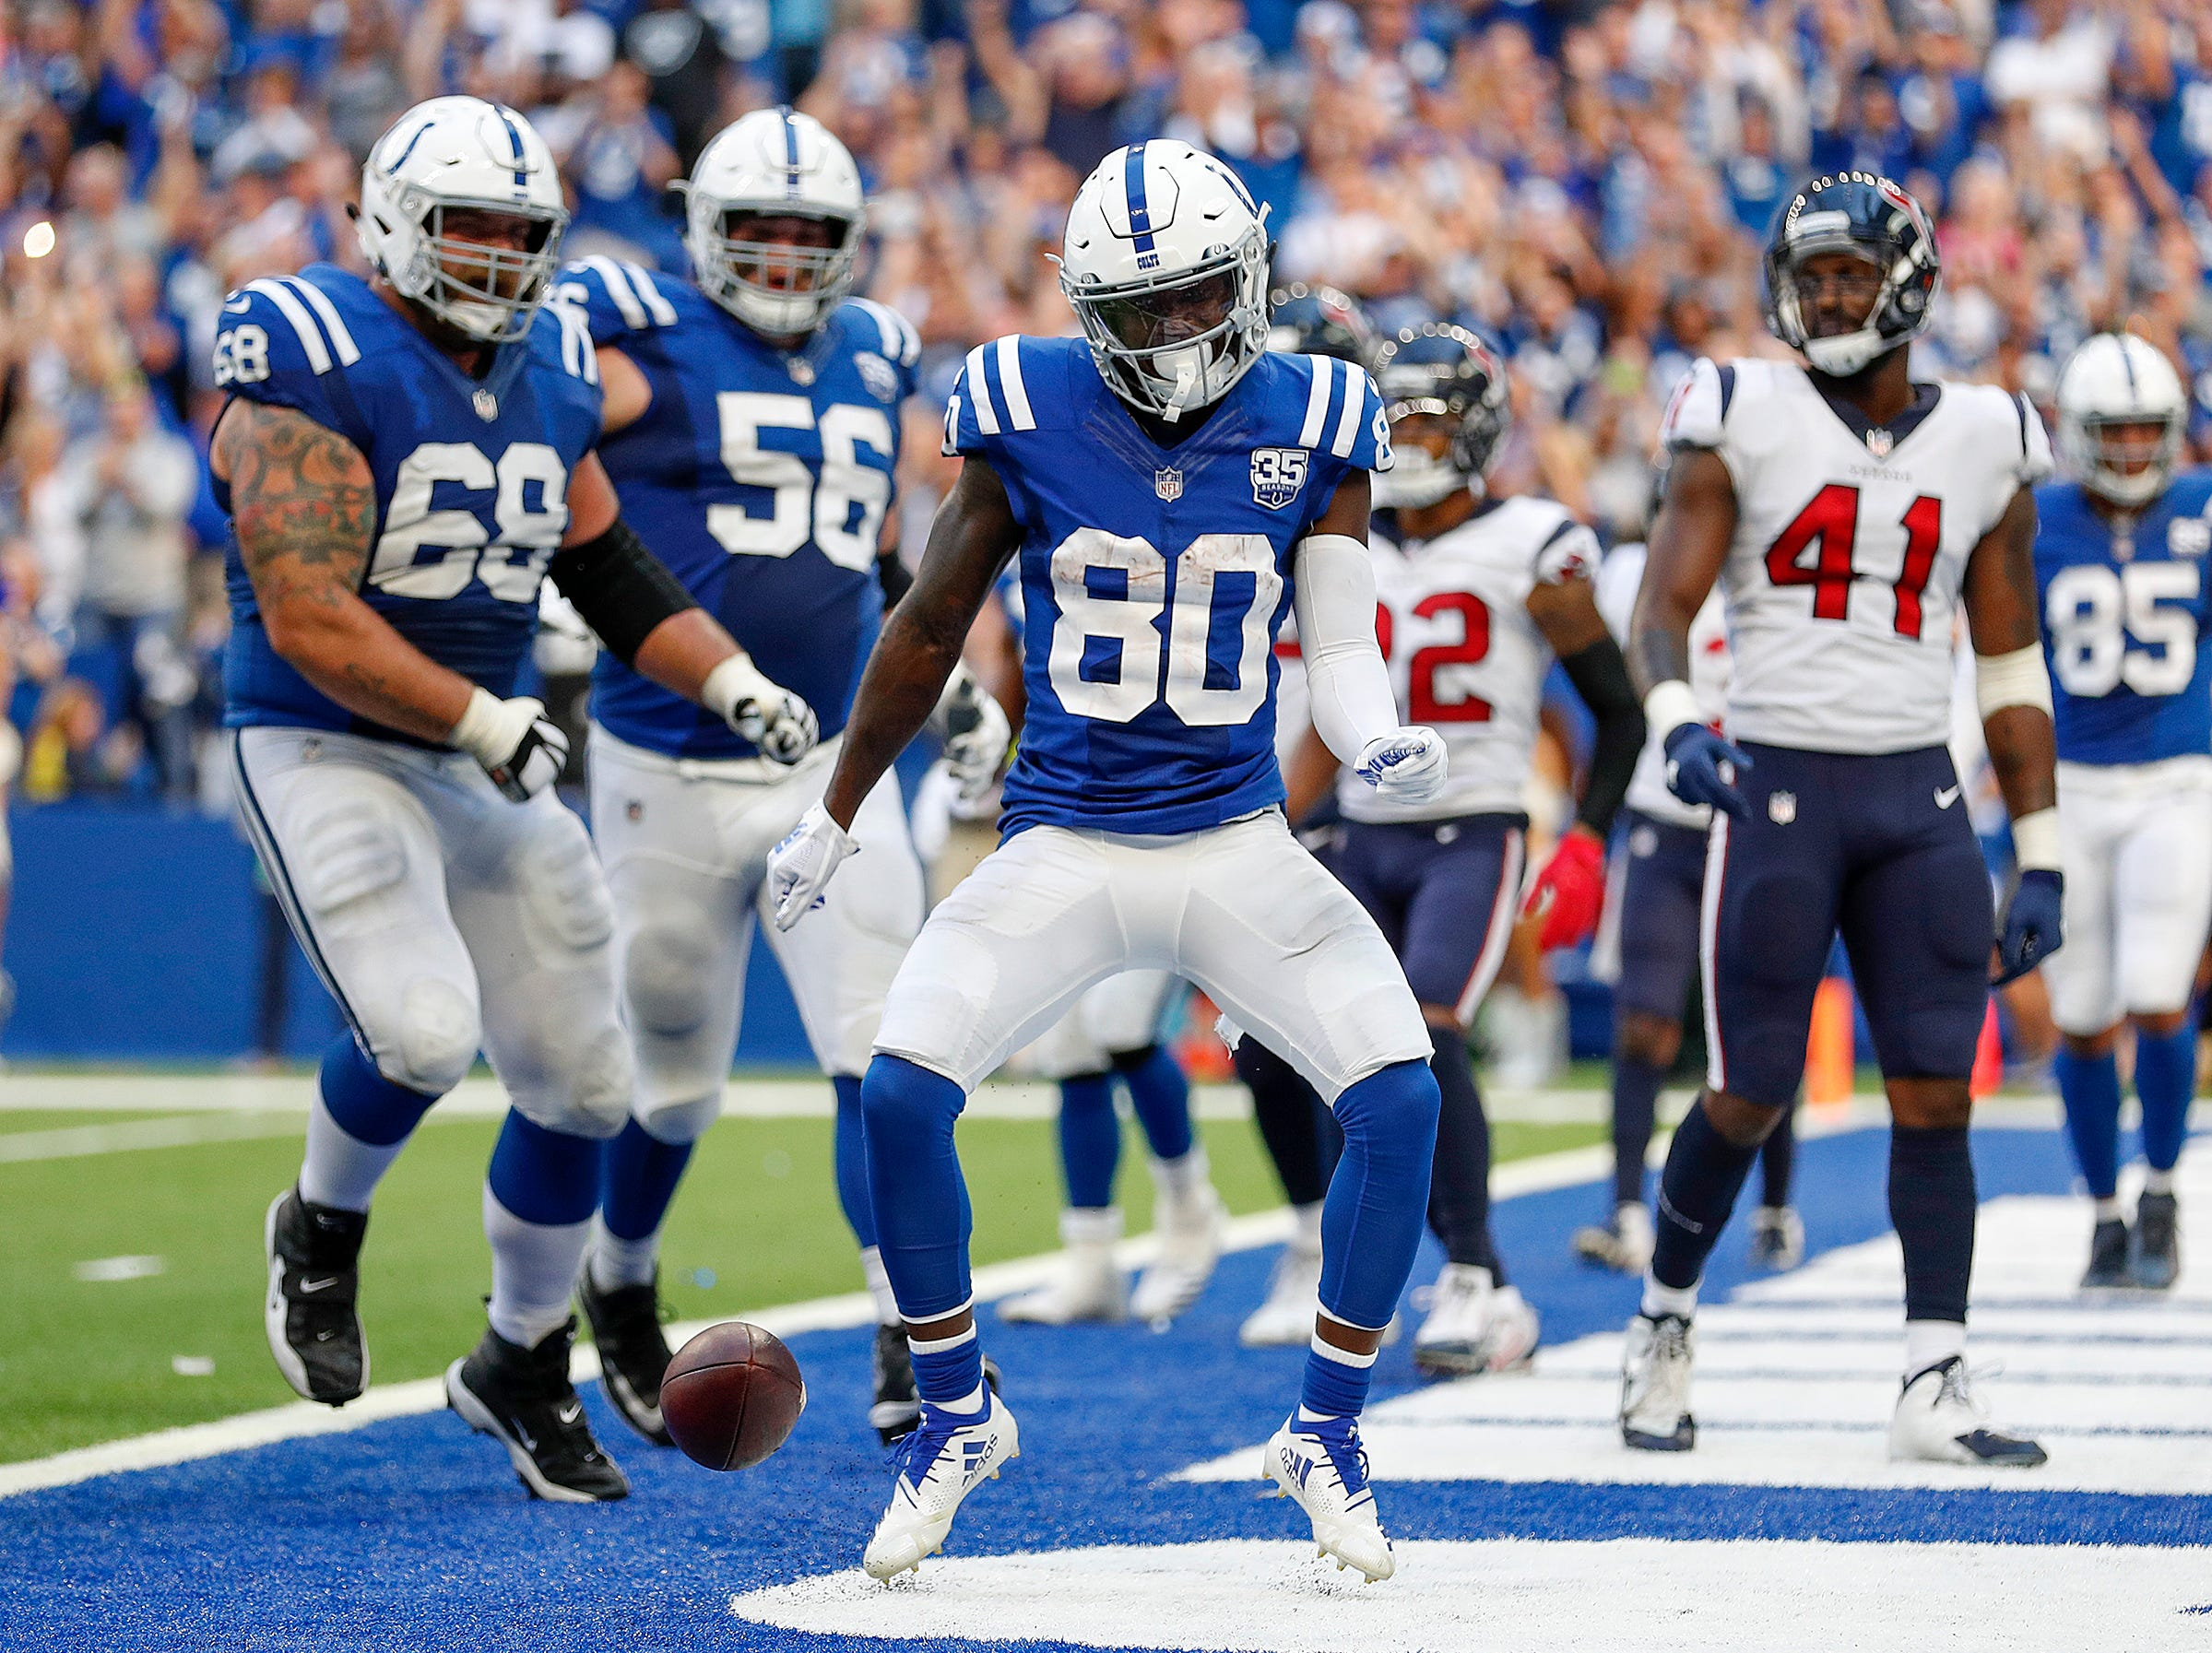 Indianapolis Colts wide receiver Chester Rogers (80) celebrates his two-point conversion catch in the second half of their game on Sunday, Sept. 30, 2018. The Indianapolis Colts lost 37-34 in overtime to the Houston Texans.